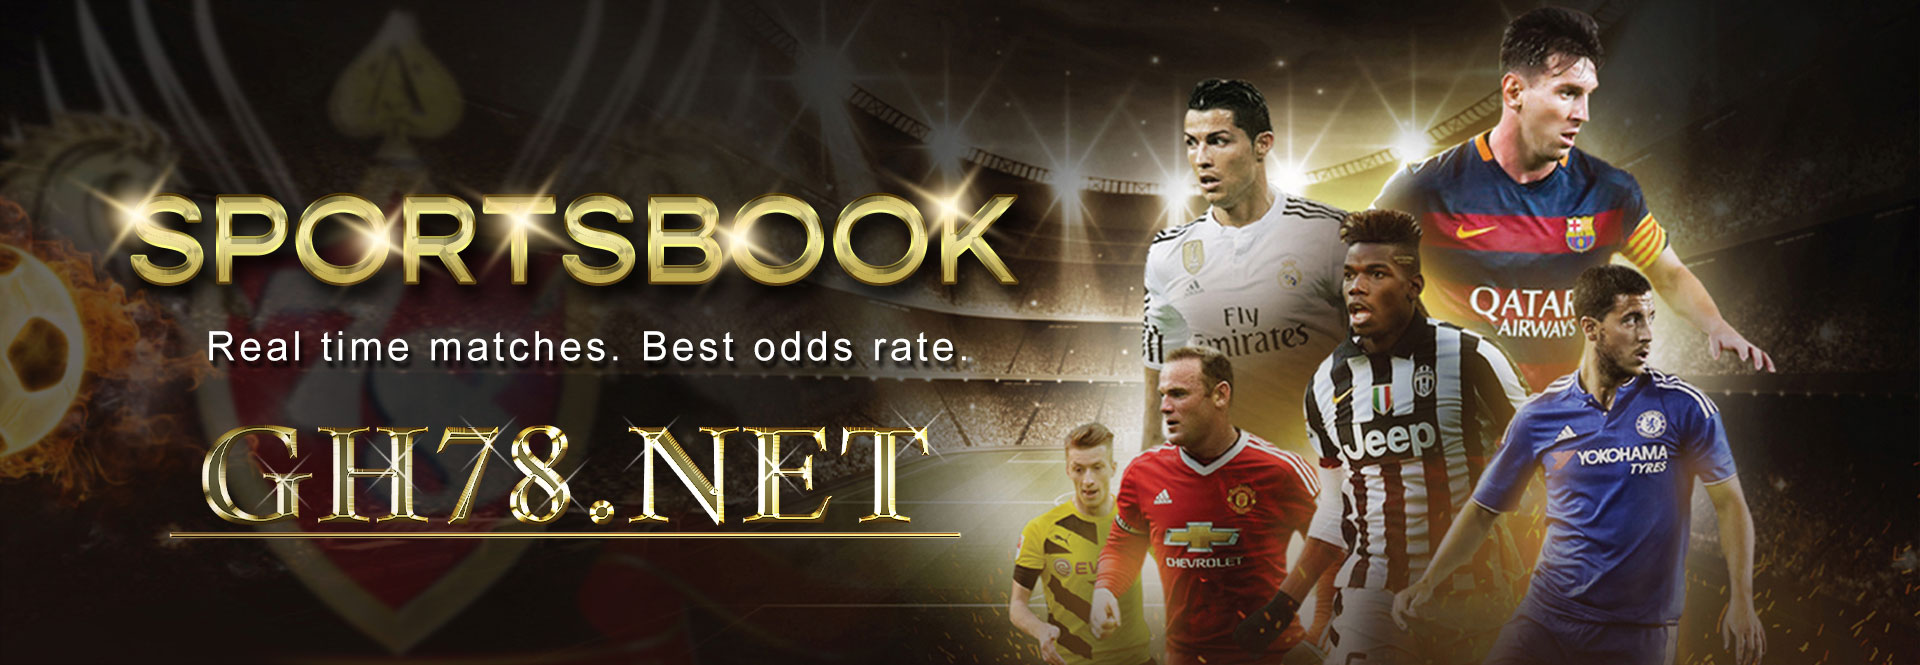 Online Sports Betting Topup, - Singapore - Malaysia